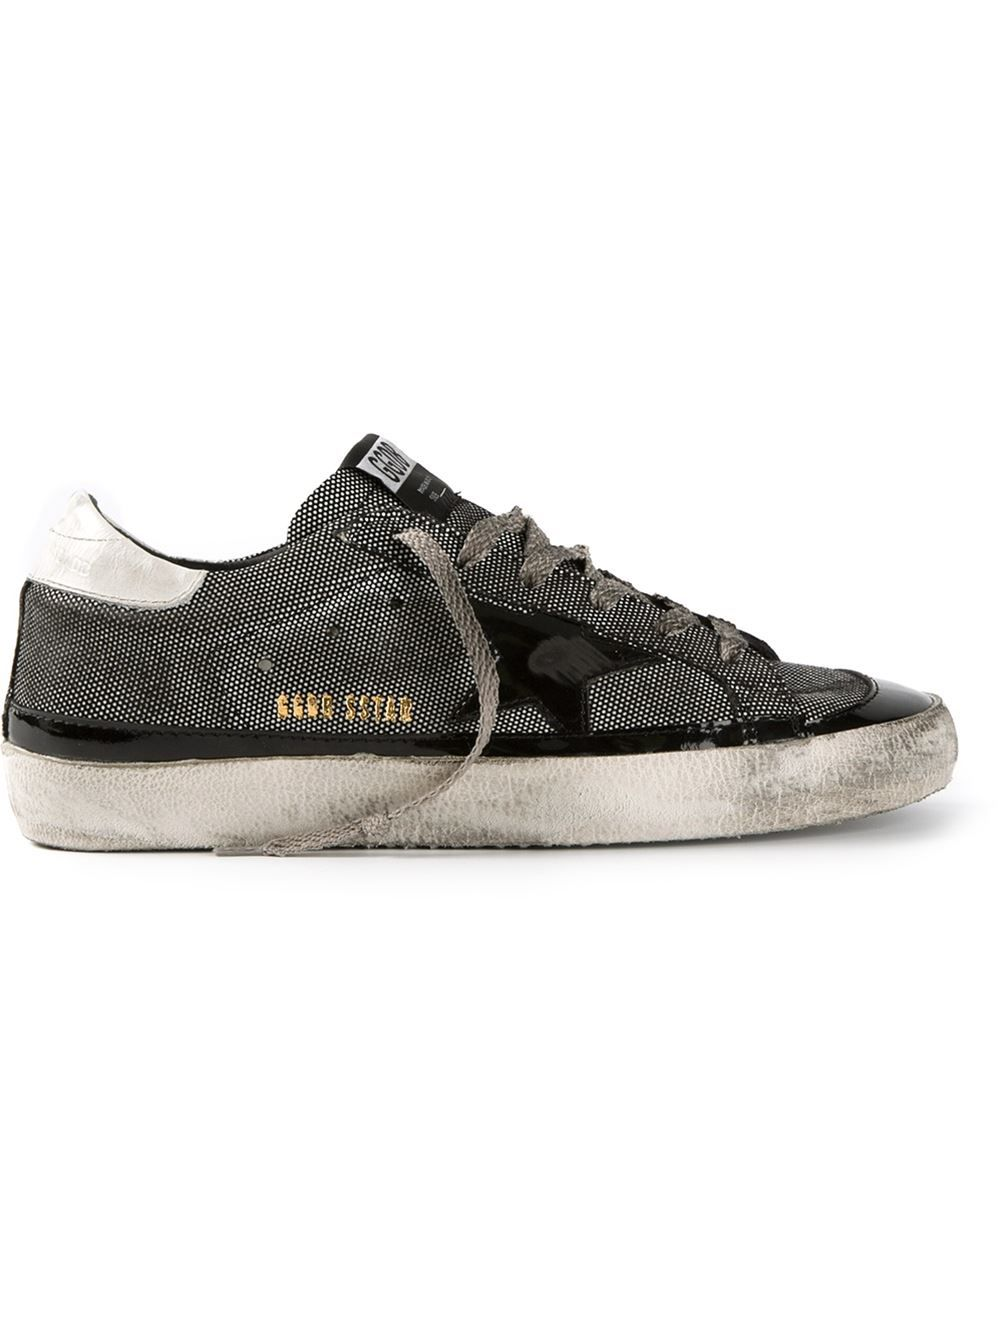 6a86ec286318 Golden Goose Deluxe Brand Distressed Trainers - Pozzilei - Farfetch ...